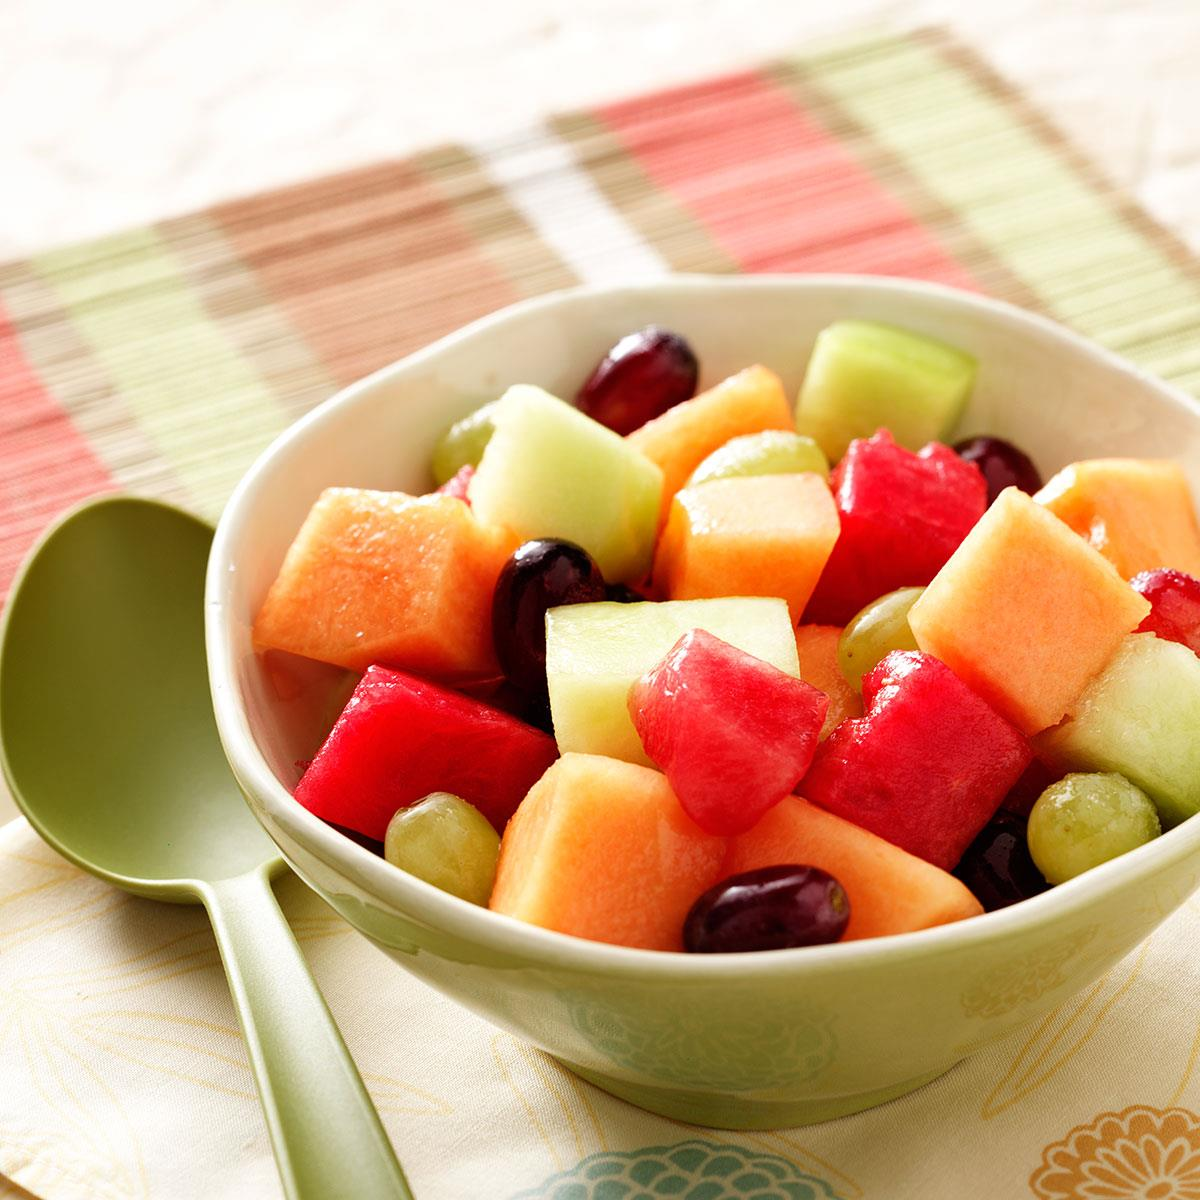 Melon And Grape Salad Recipe Taste Of Home This grilled melon caprese salad is a great starter for the summer months. melon and grape salad